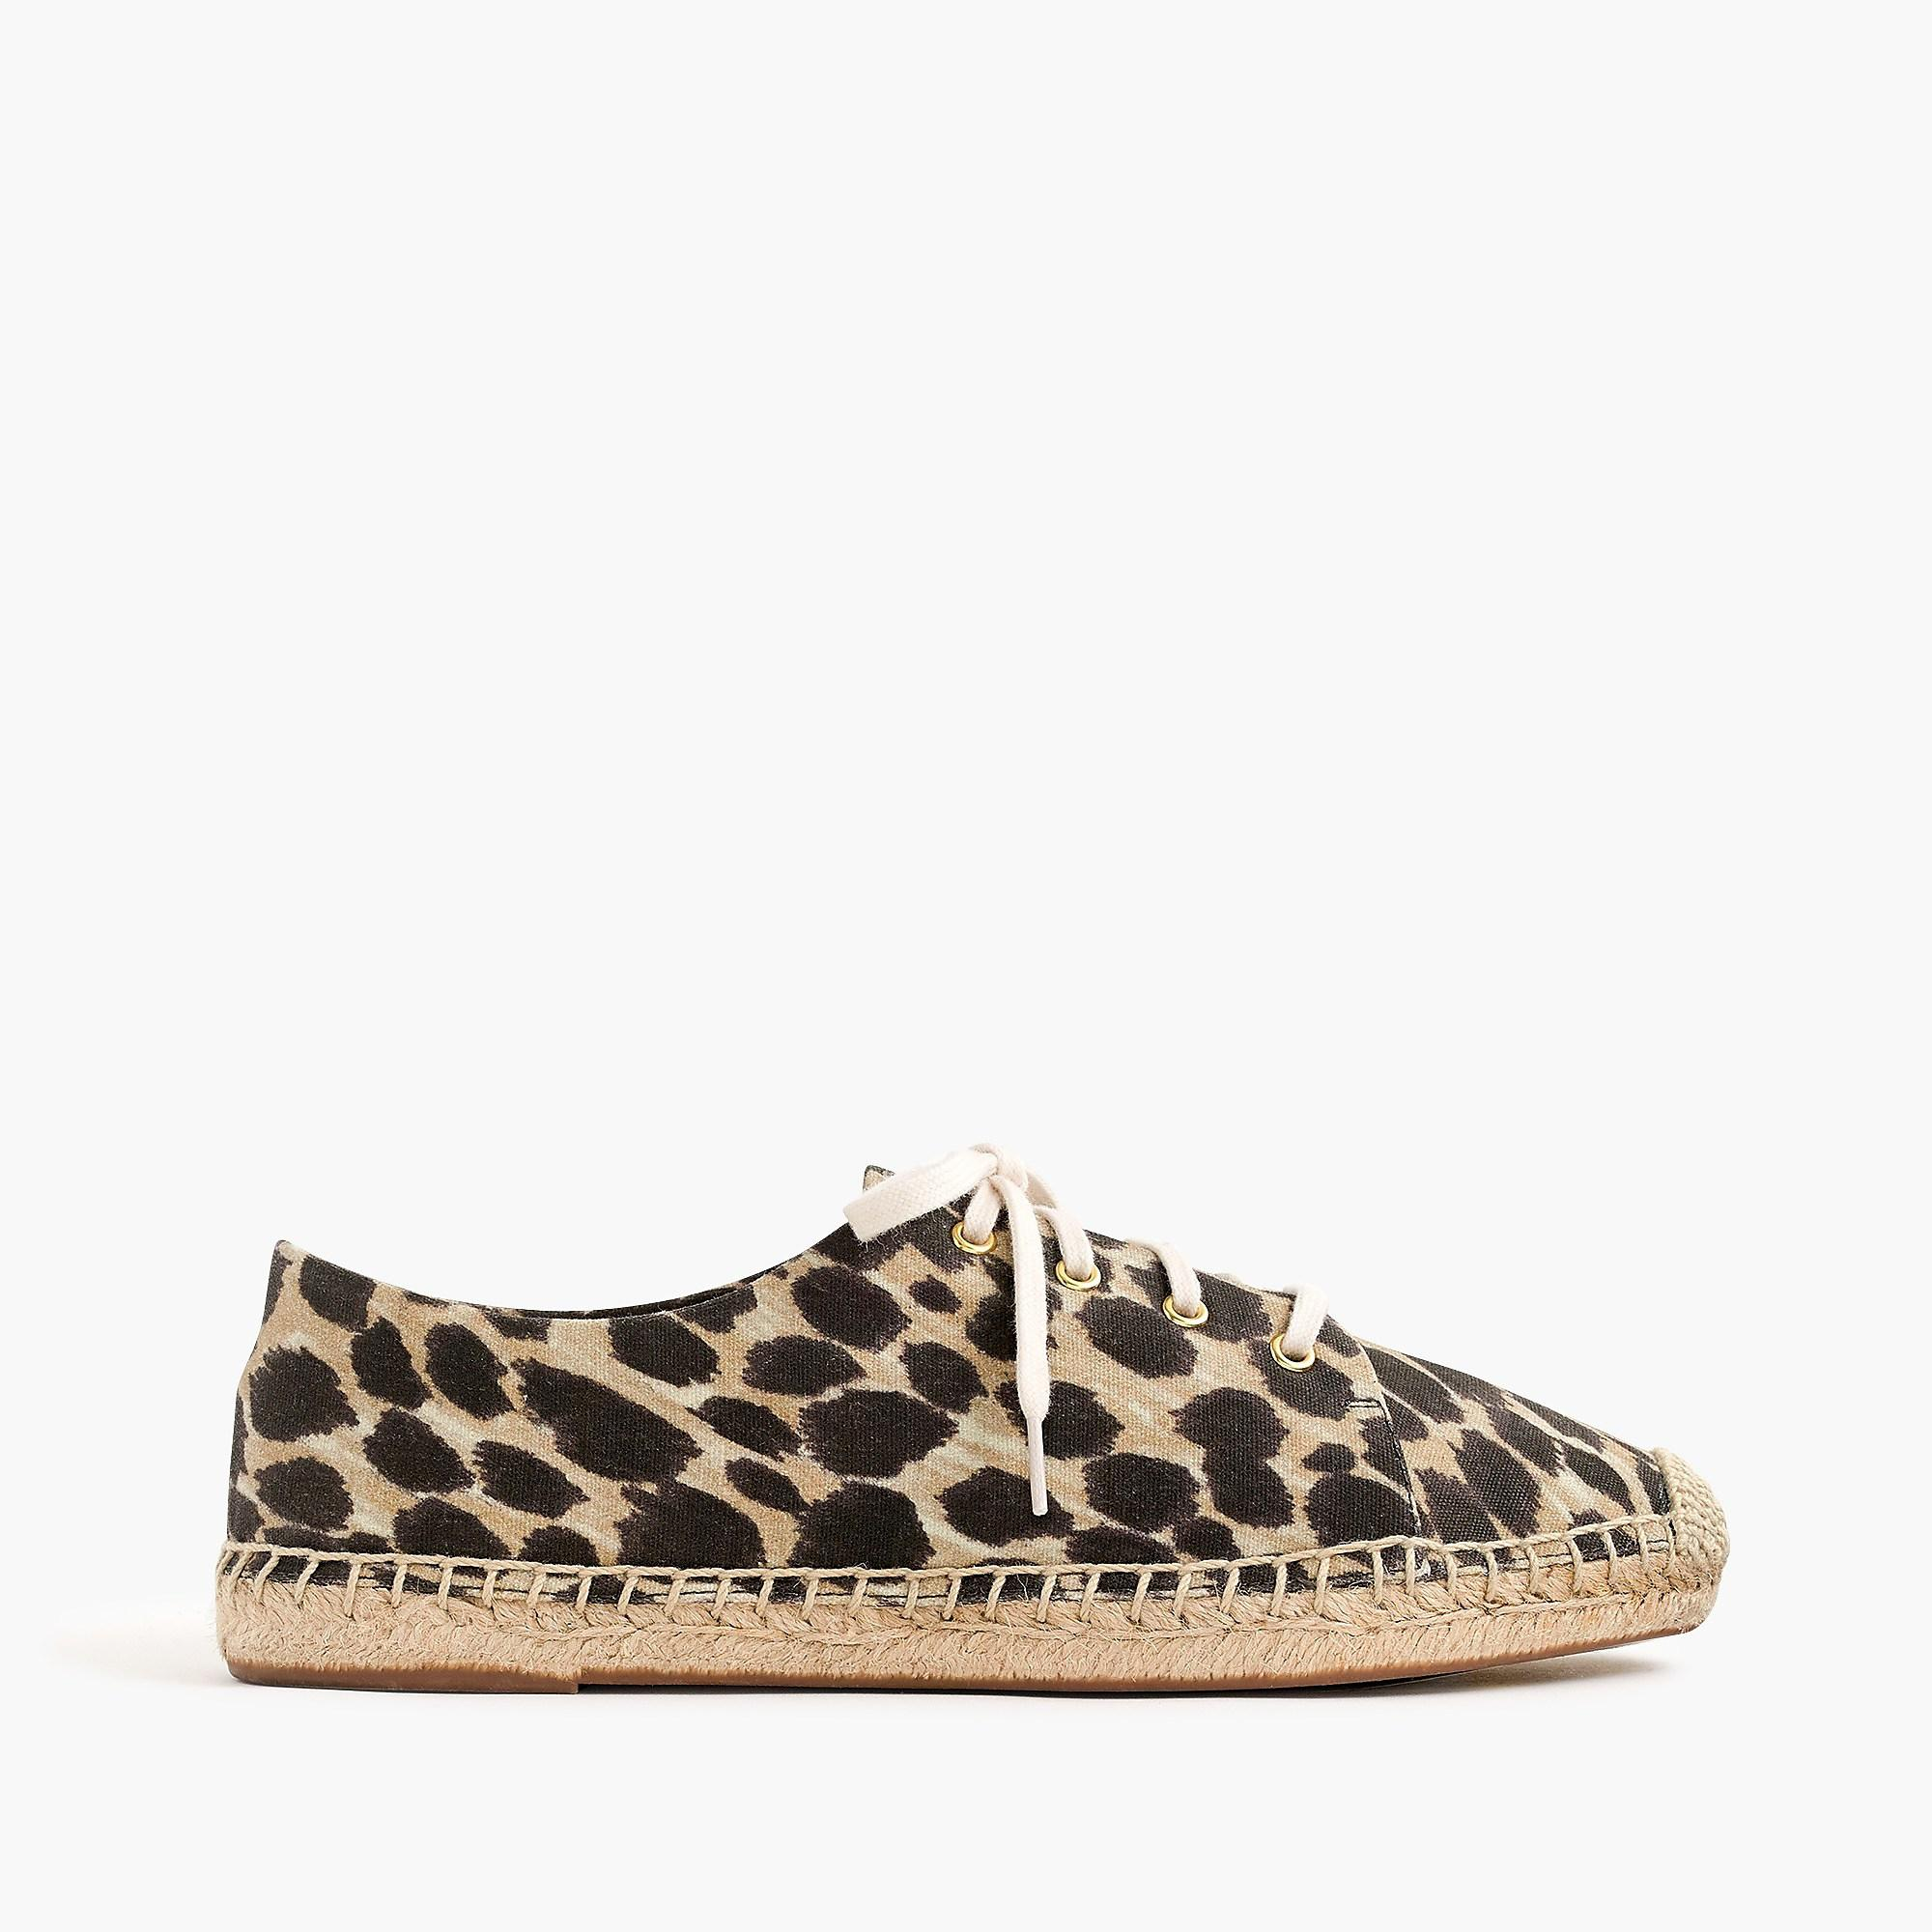 J.Crew Canvas Lace-up Espadrilles In